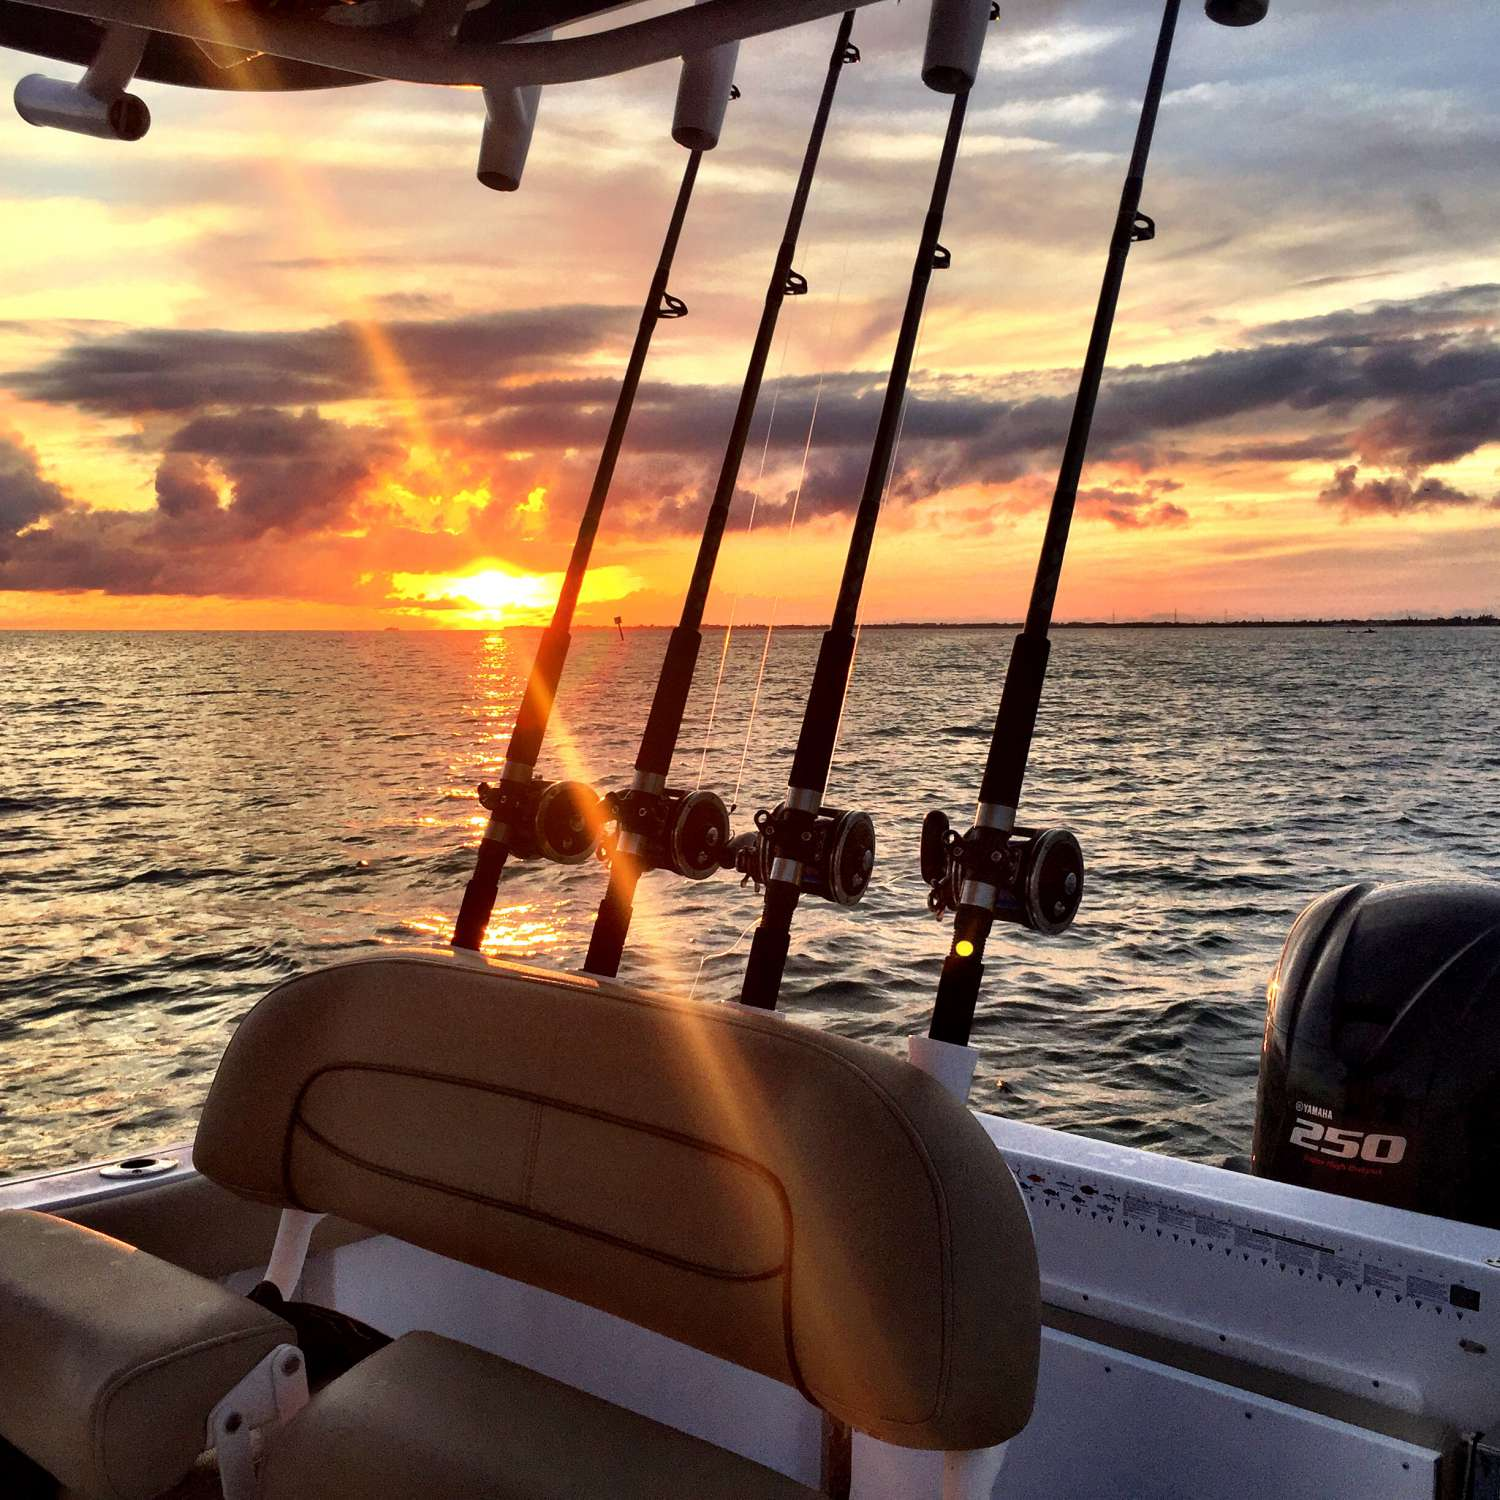 Title: Fl Keys  Sunset - On board their Sportsman Open 232 Center Console - Location: Jacksonville, Florida. Participating in the Photo Contest #SportsmanJanuary2017